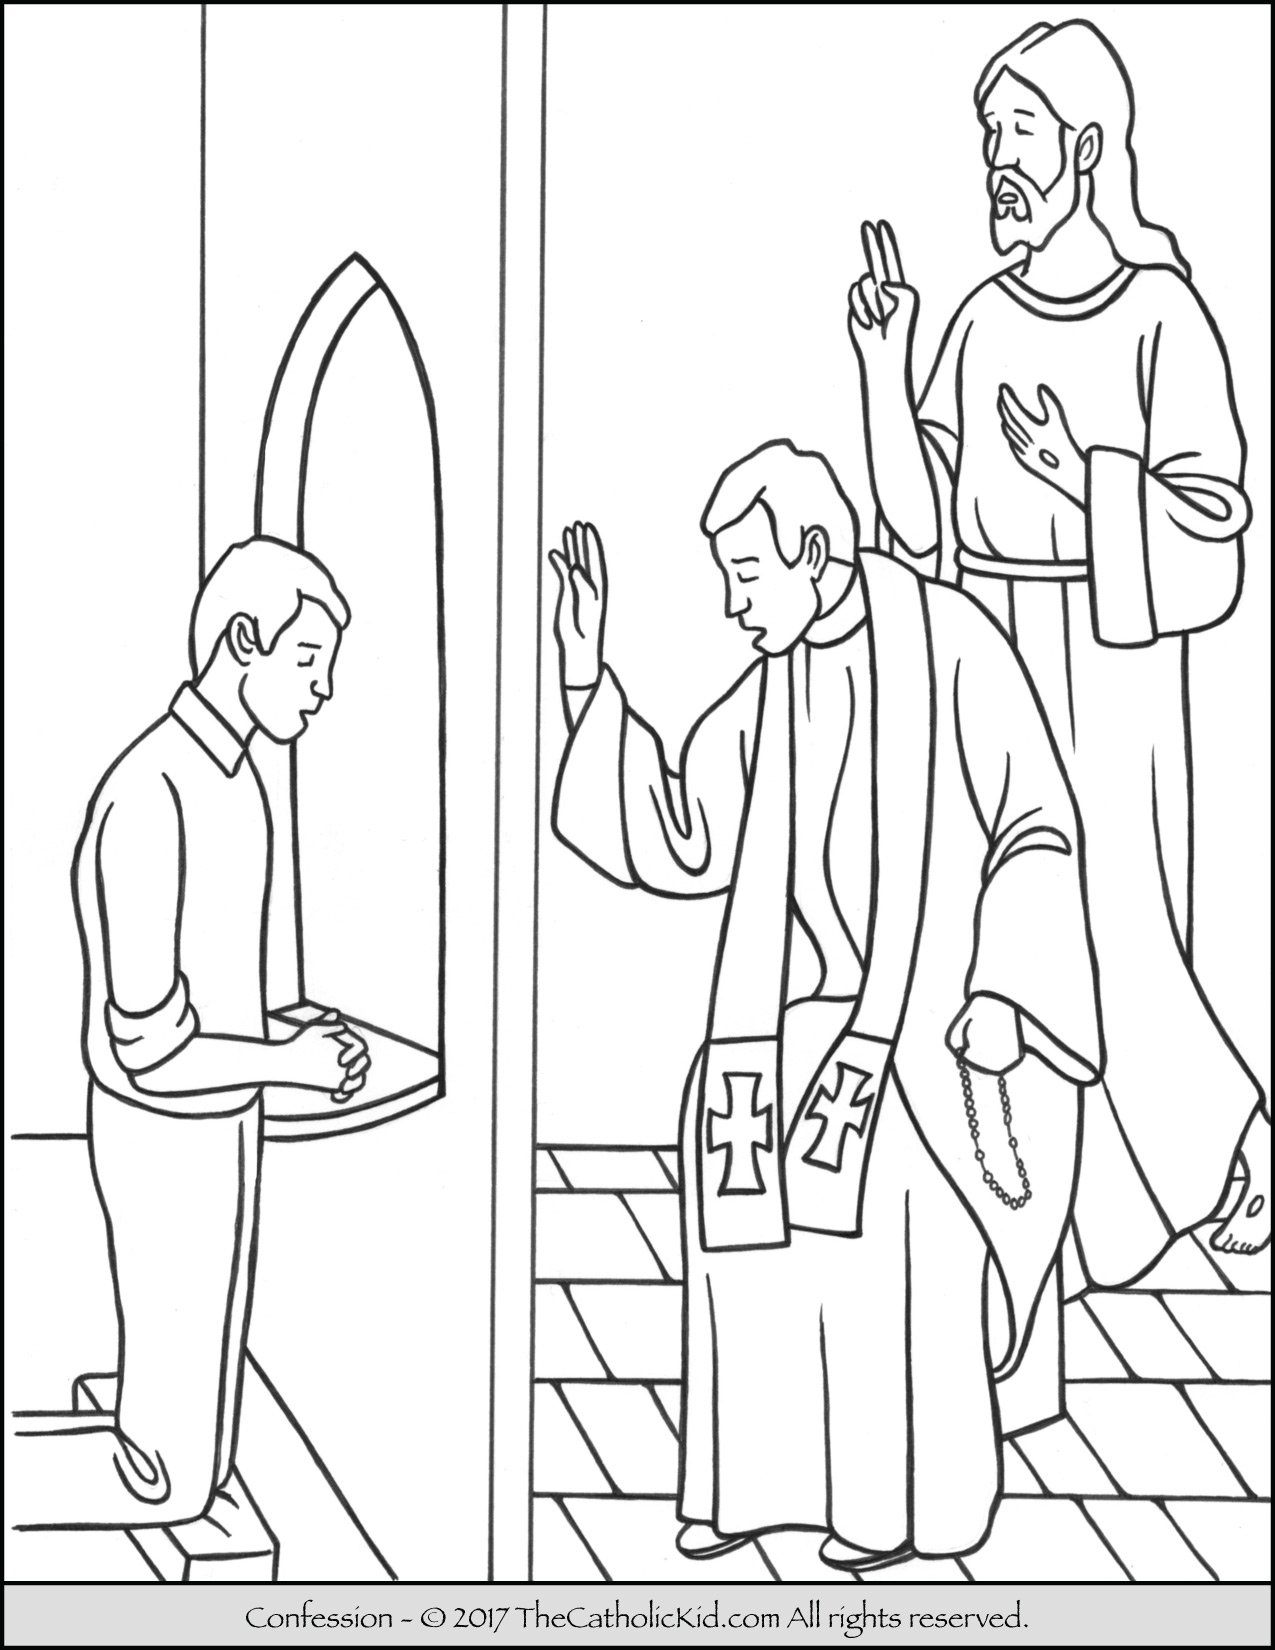 Reconciliation Coloring Pages Sacrament Of Confession Coloring Page  Thecatholickid